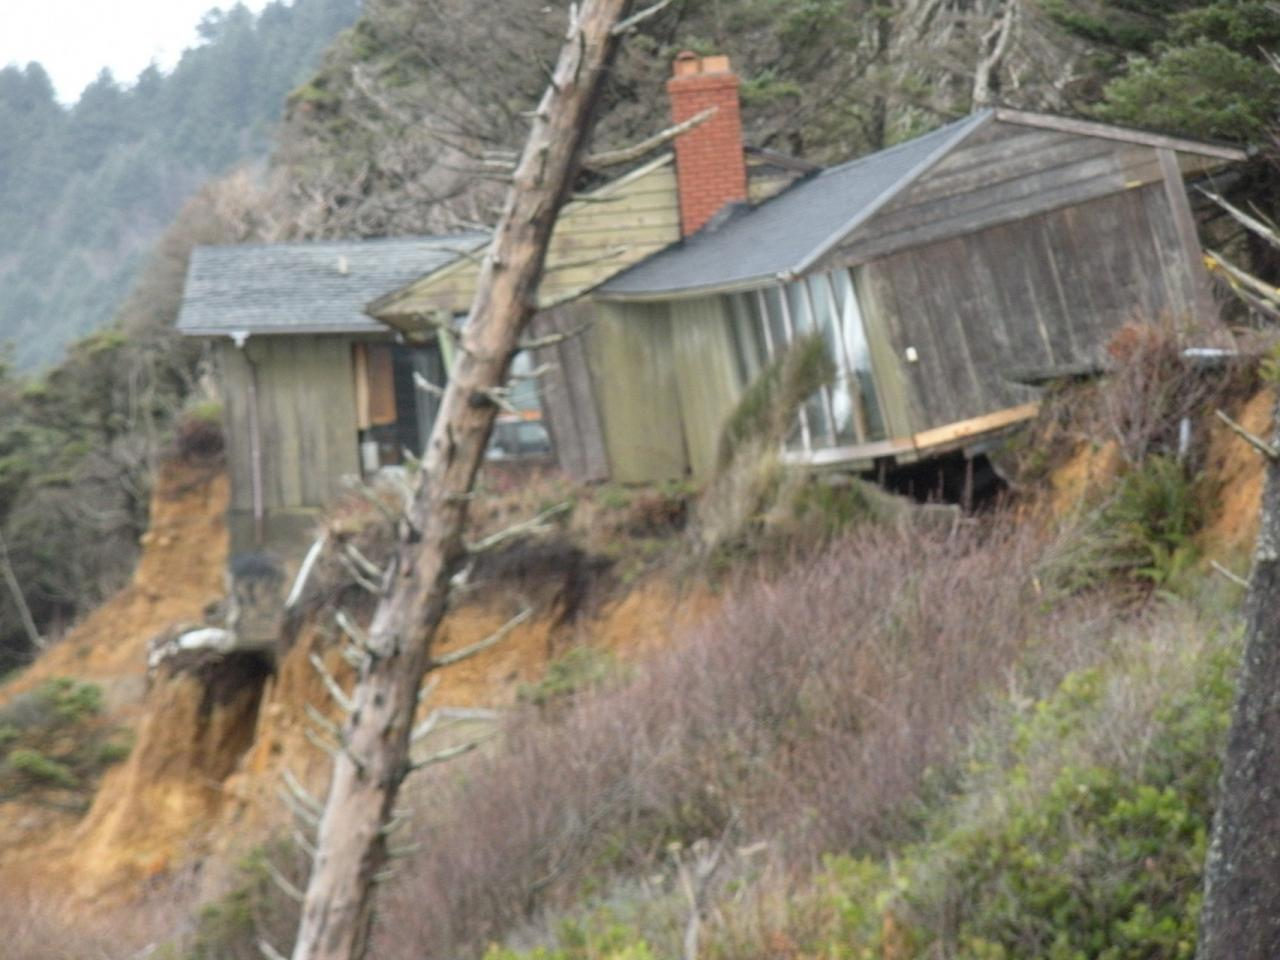 After years of bluff erosion a house is now almost falling to the beach